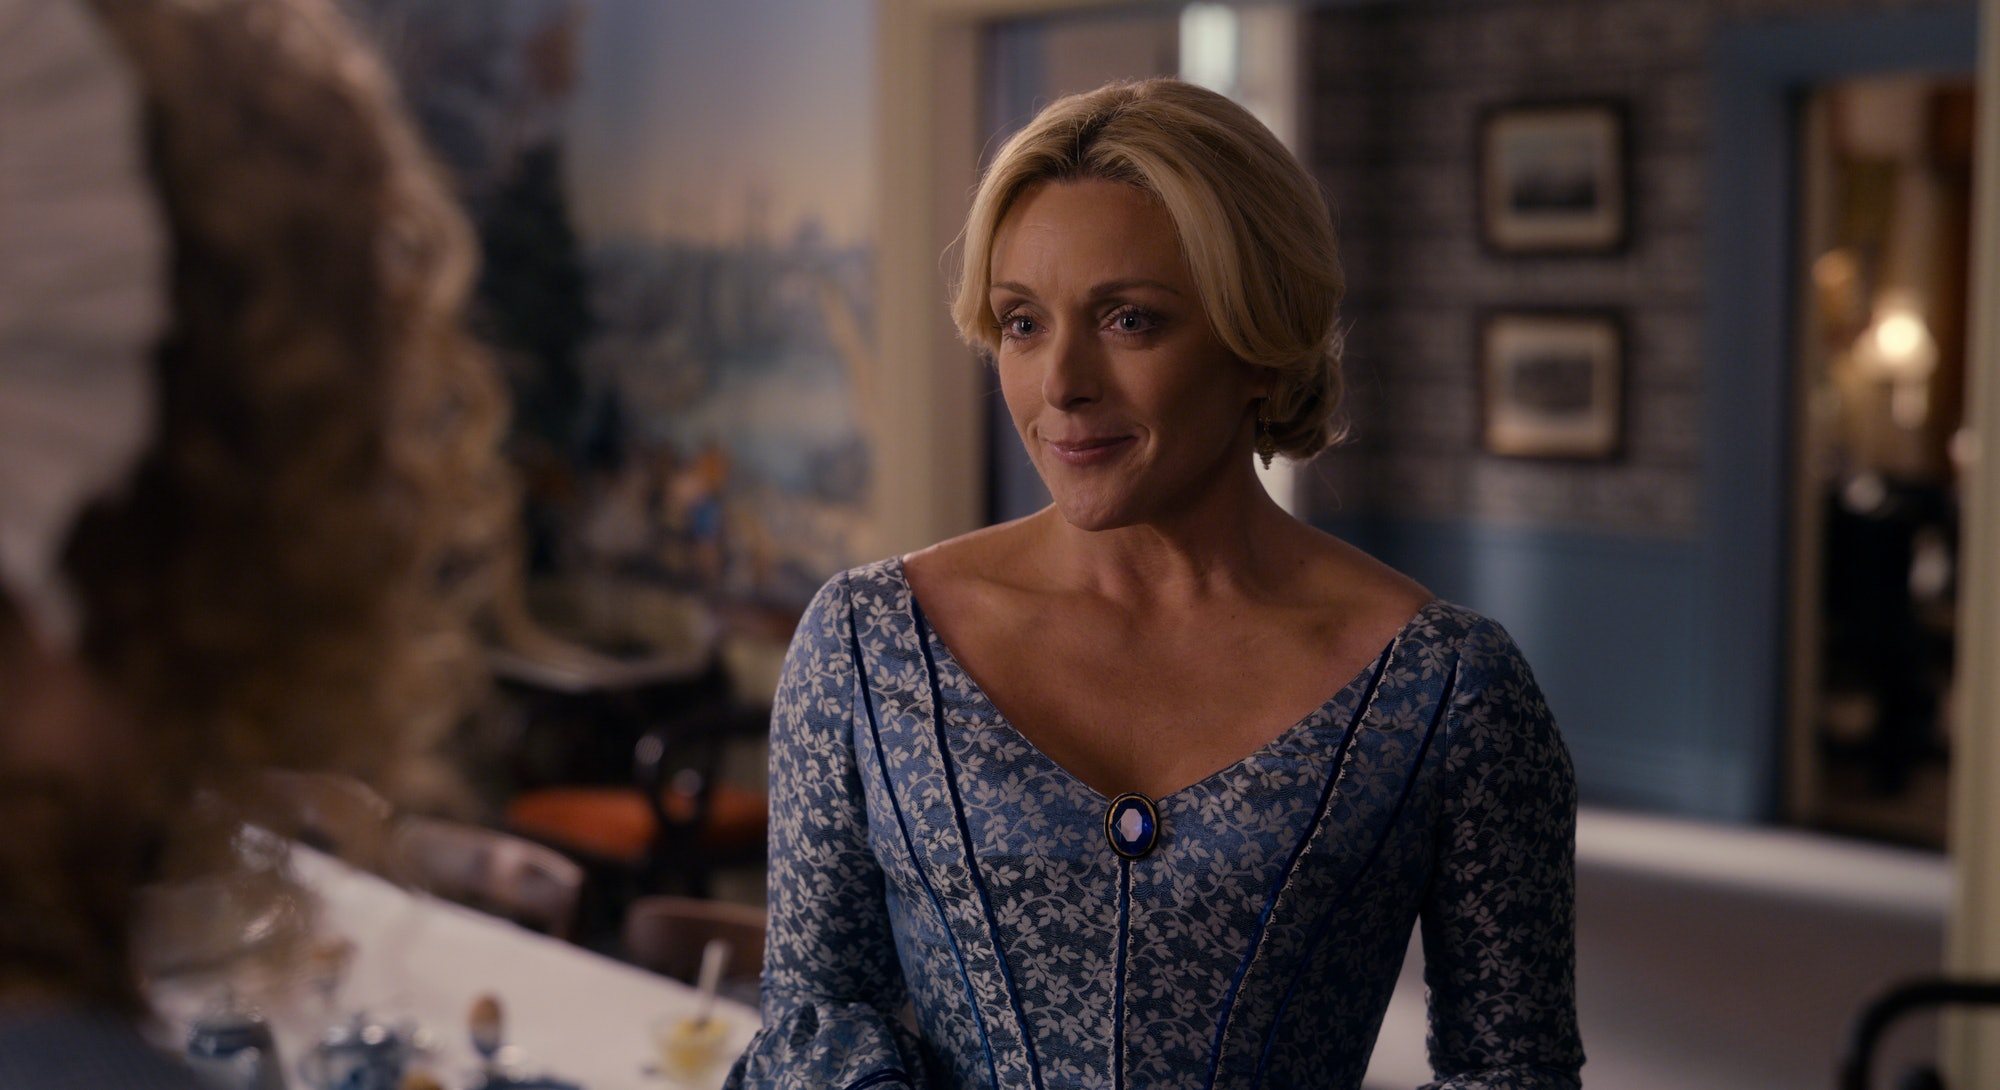 Jane Krakowski smiling as Mrs. Dickinson